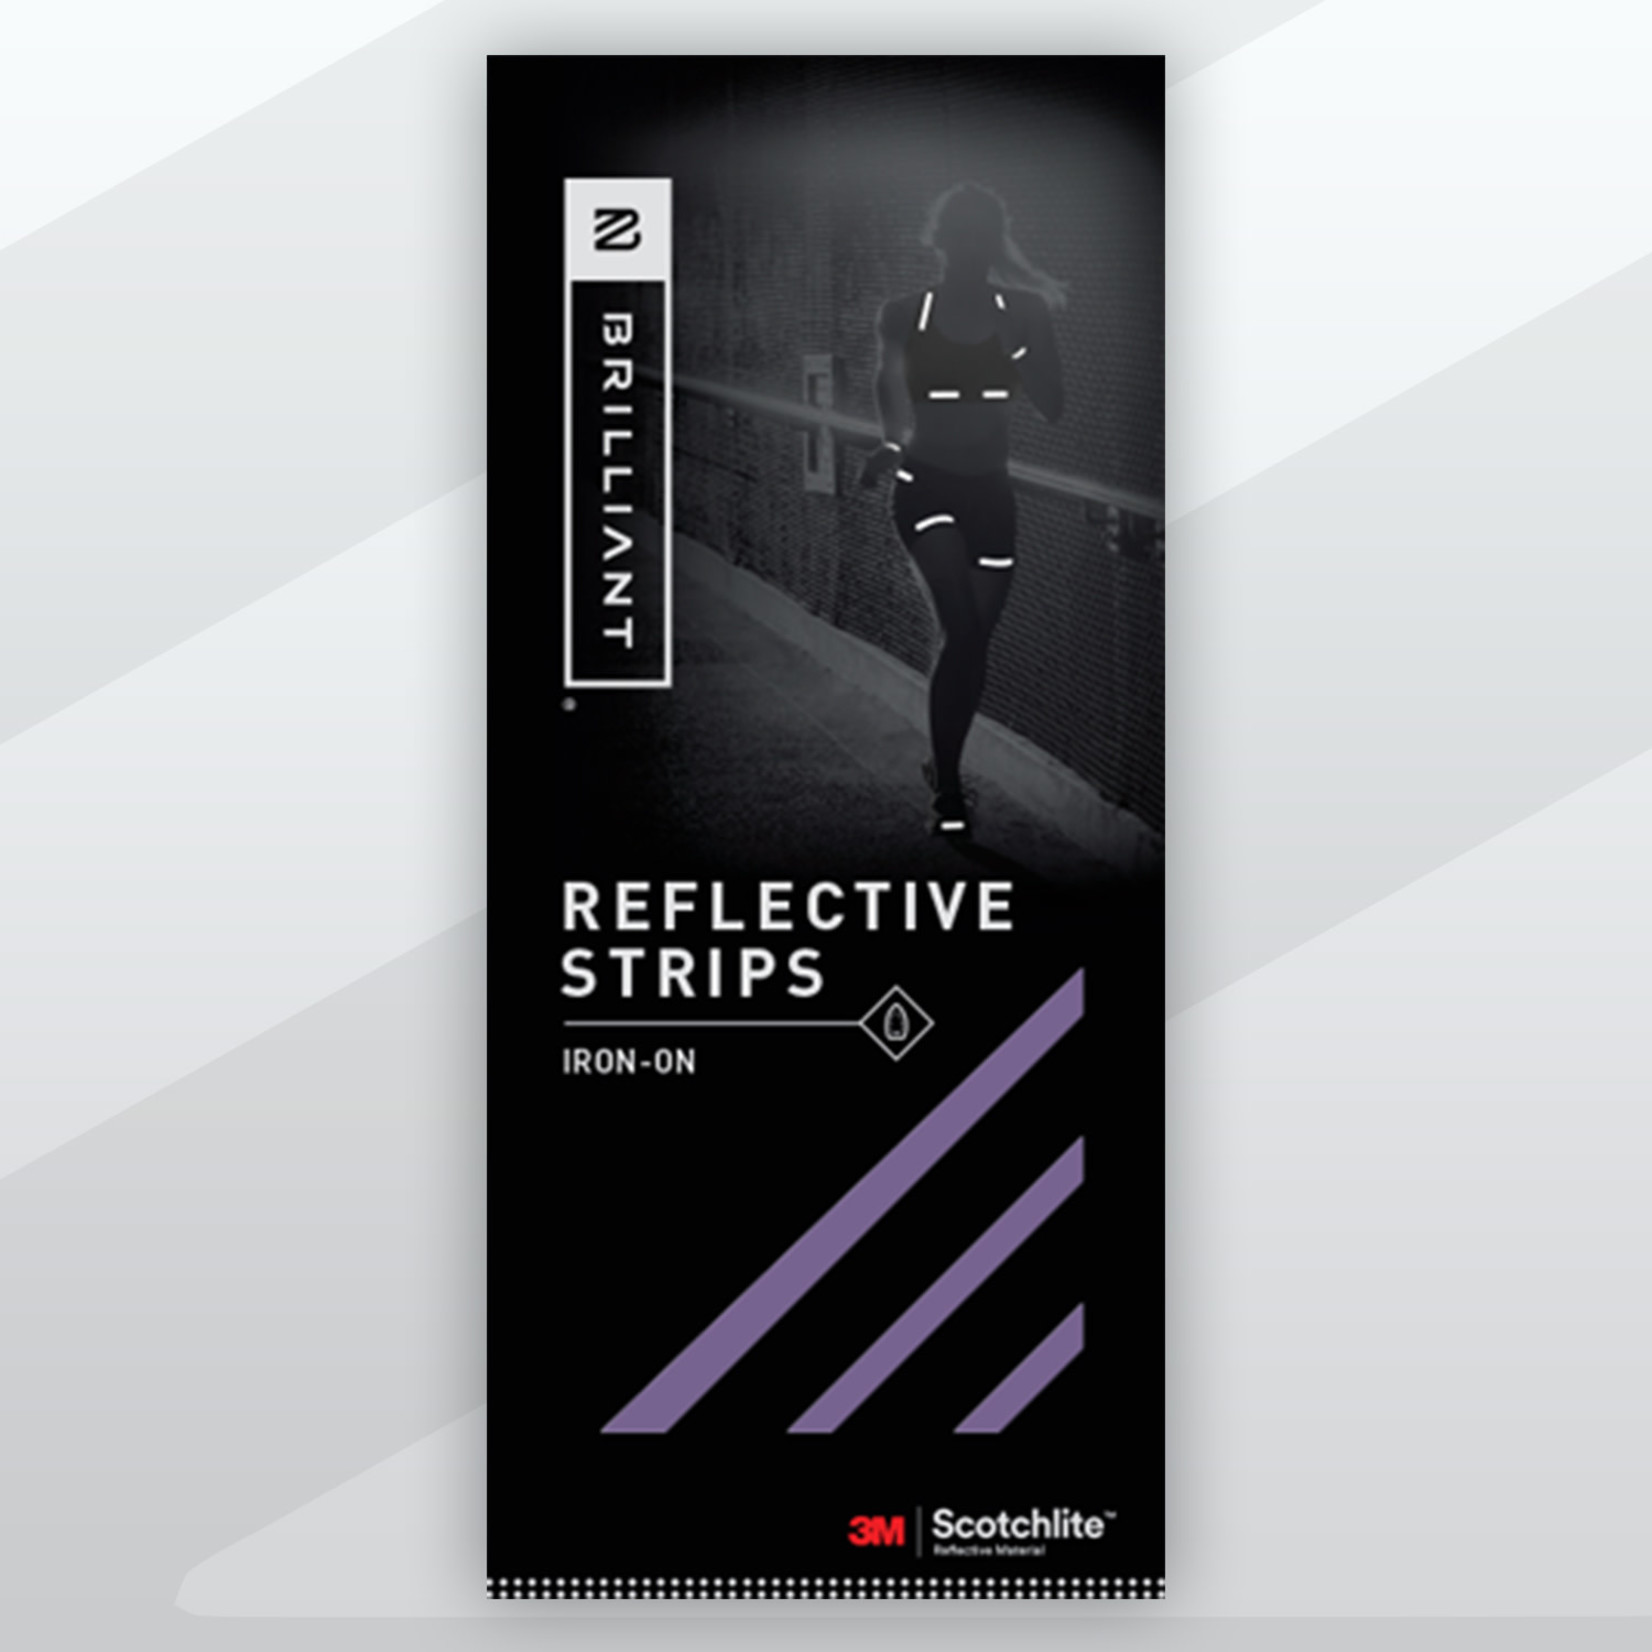 Brilliant Reflective Strips Iron-On